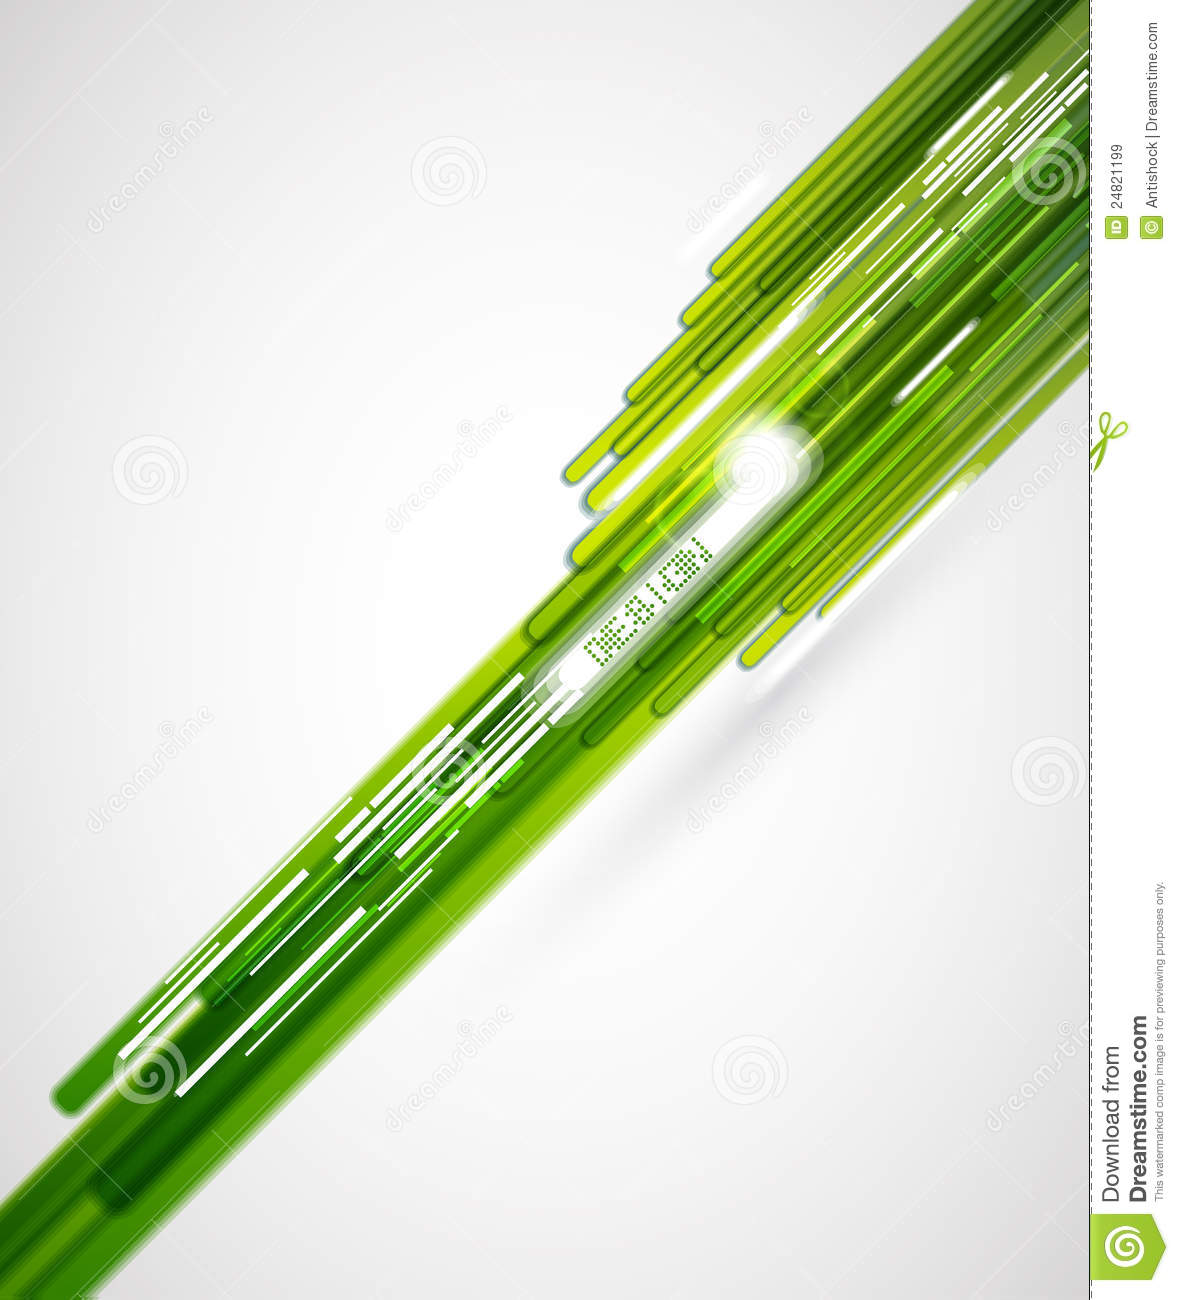 Vector Drawing Straight Lines : Green straight lines background royalty free stock images